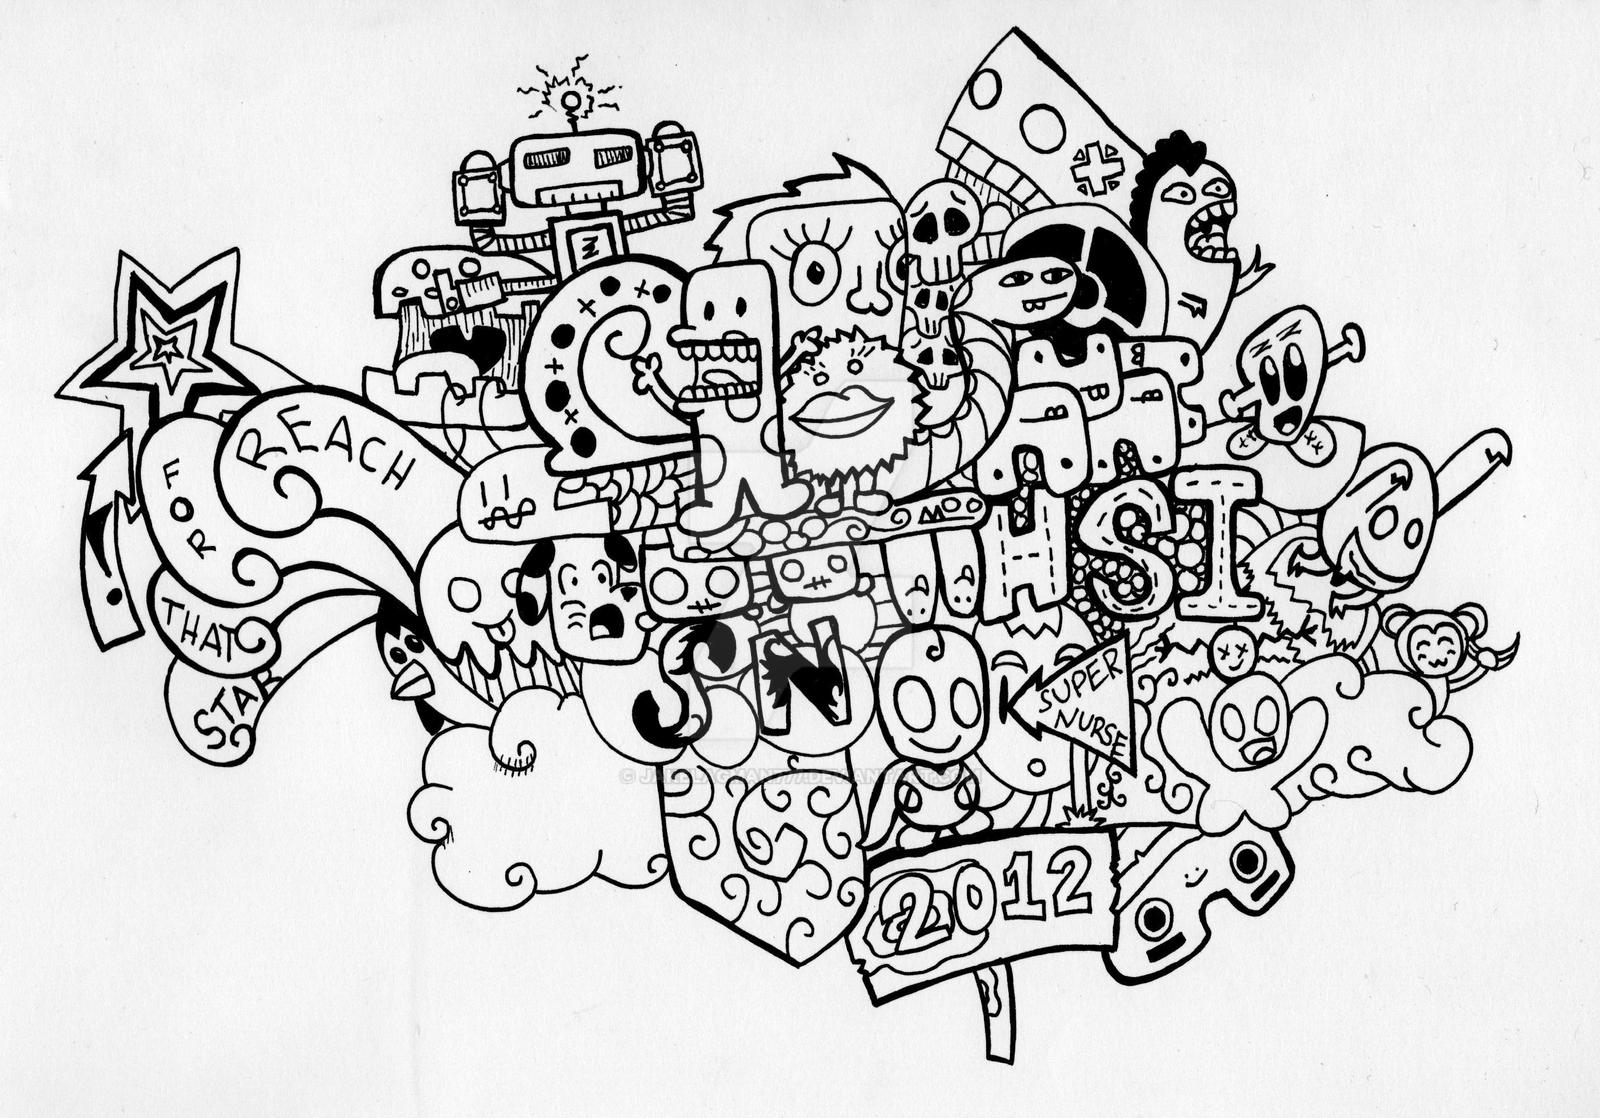 Scribble Drawing Game : Doodle art by jakelagman on deviantart